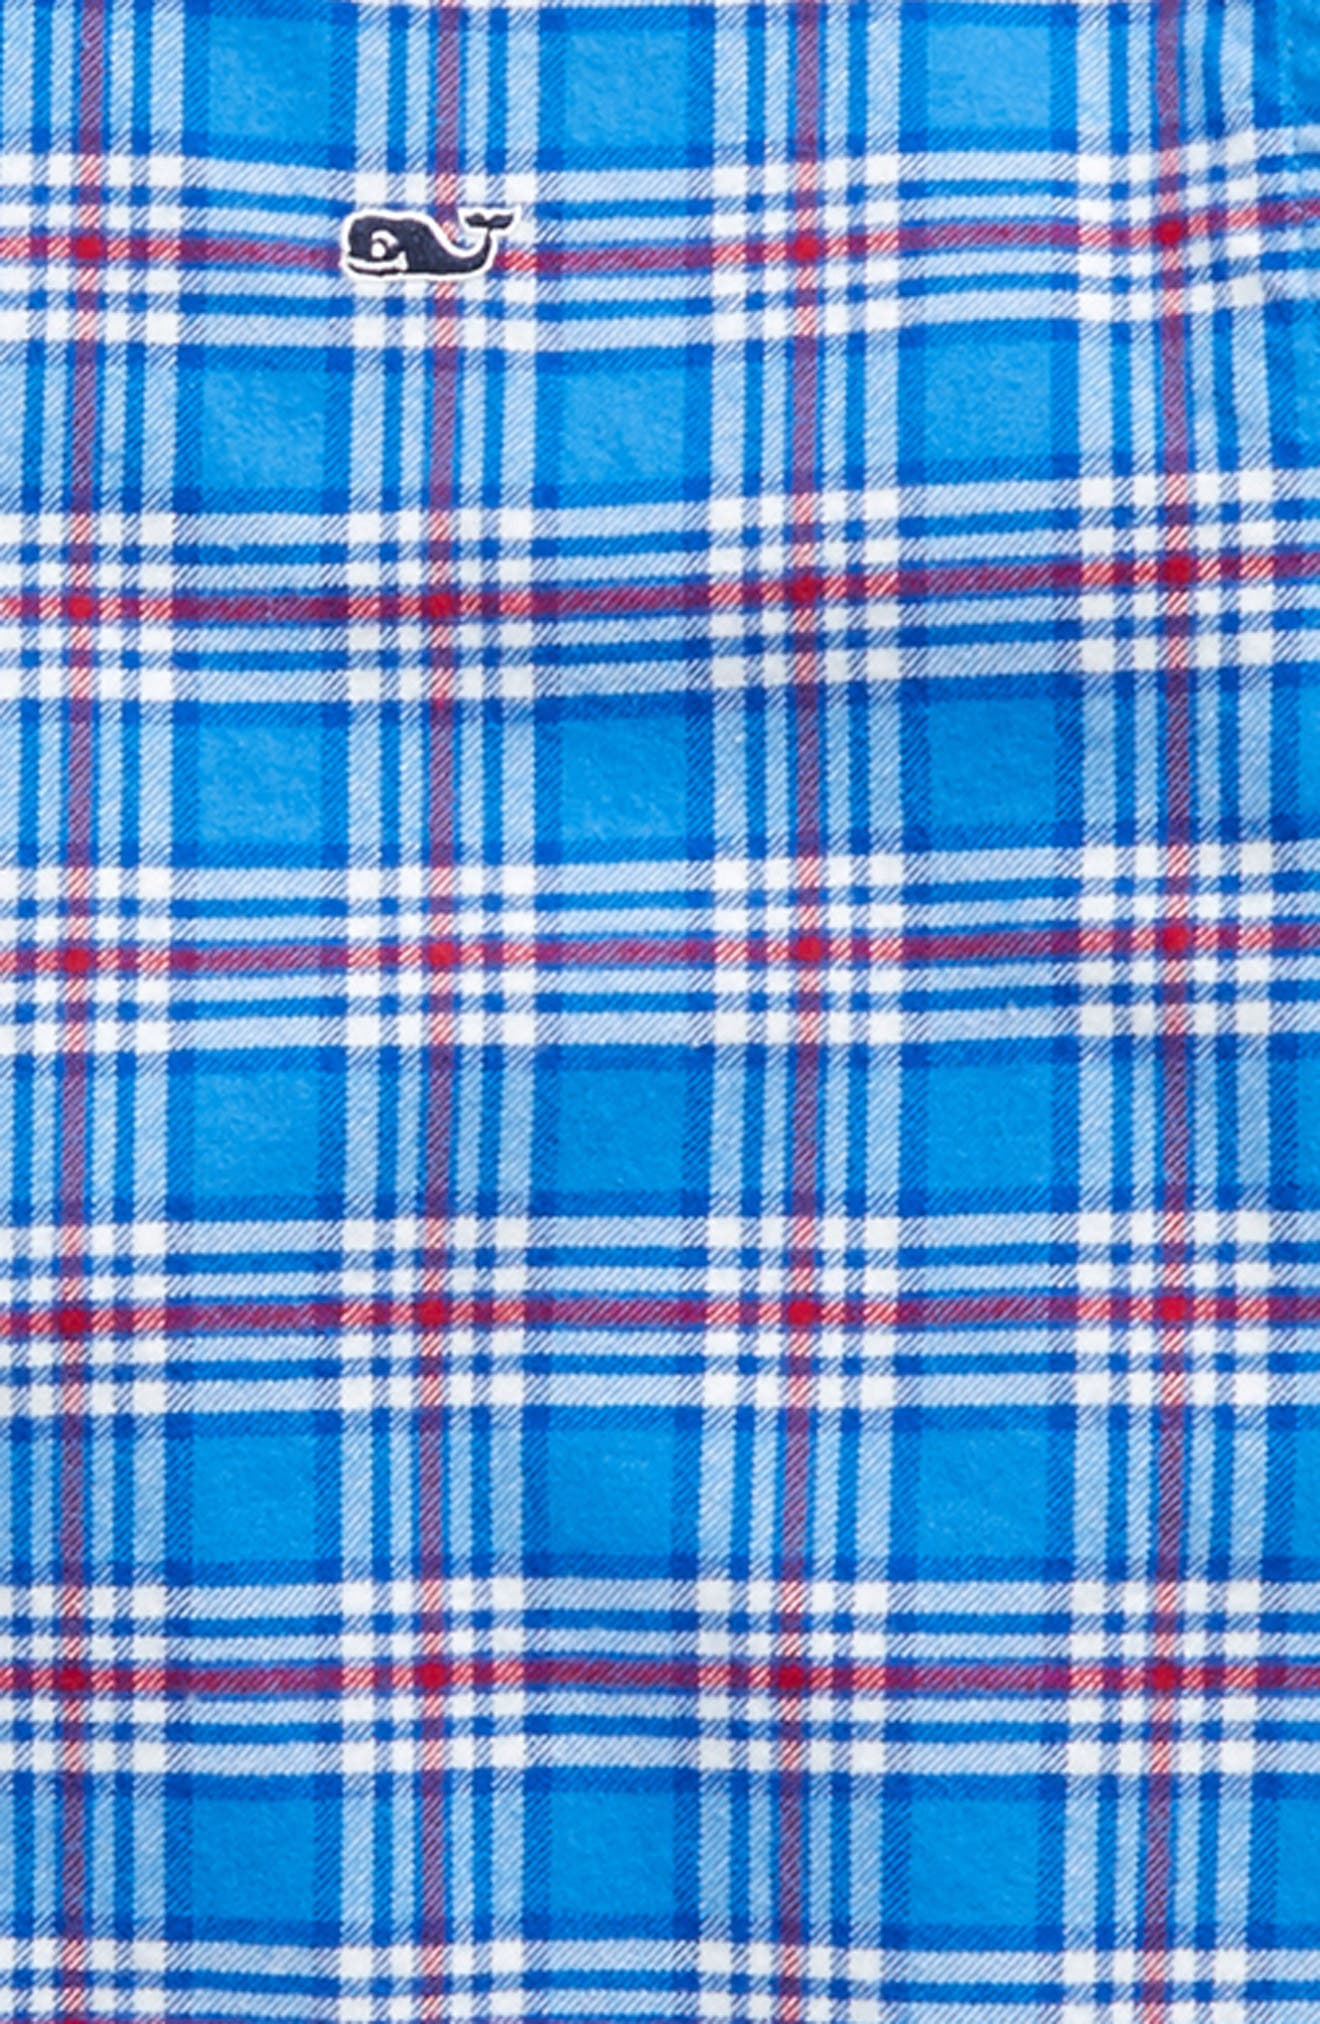 Chandler Pond Plaid Flannel Shirt,                             Alternate thumbnail 2, color,                             Hull Blue